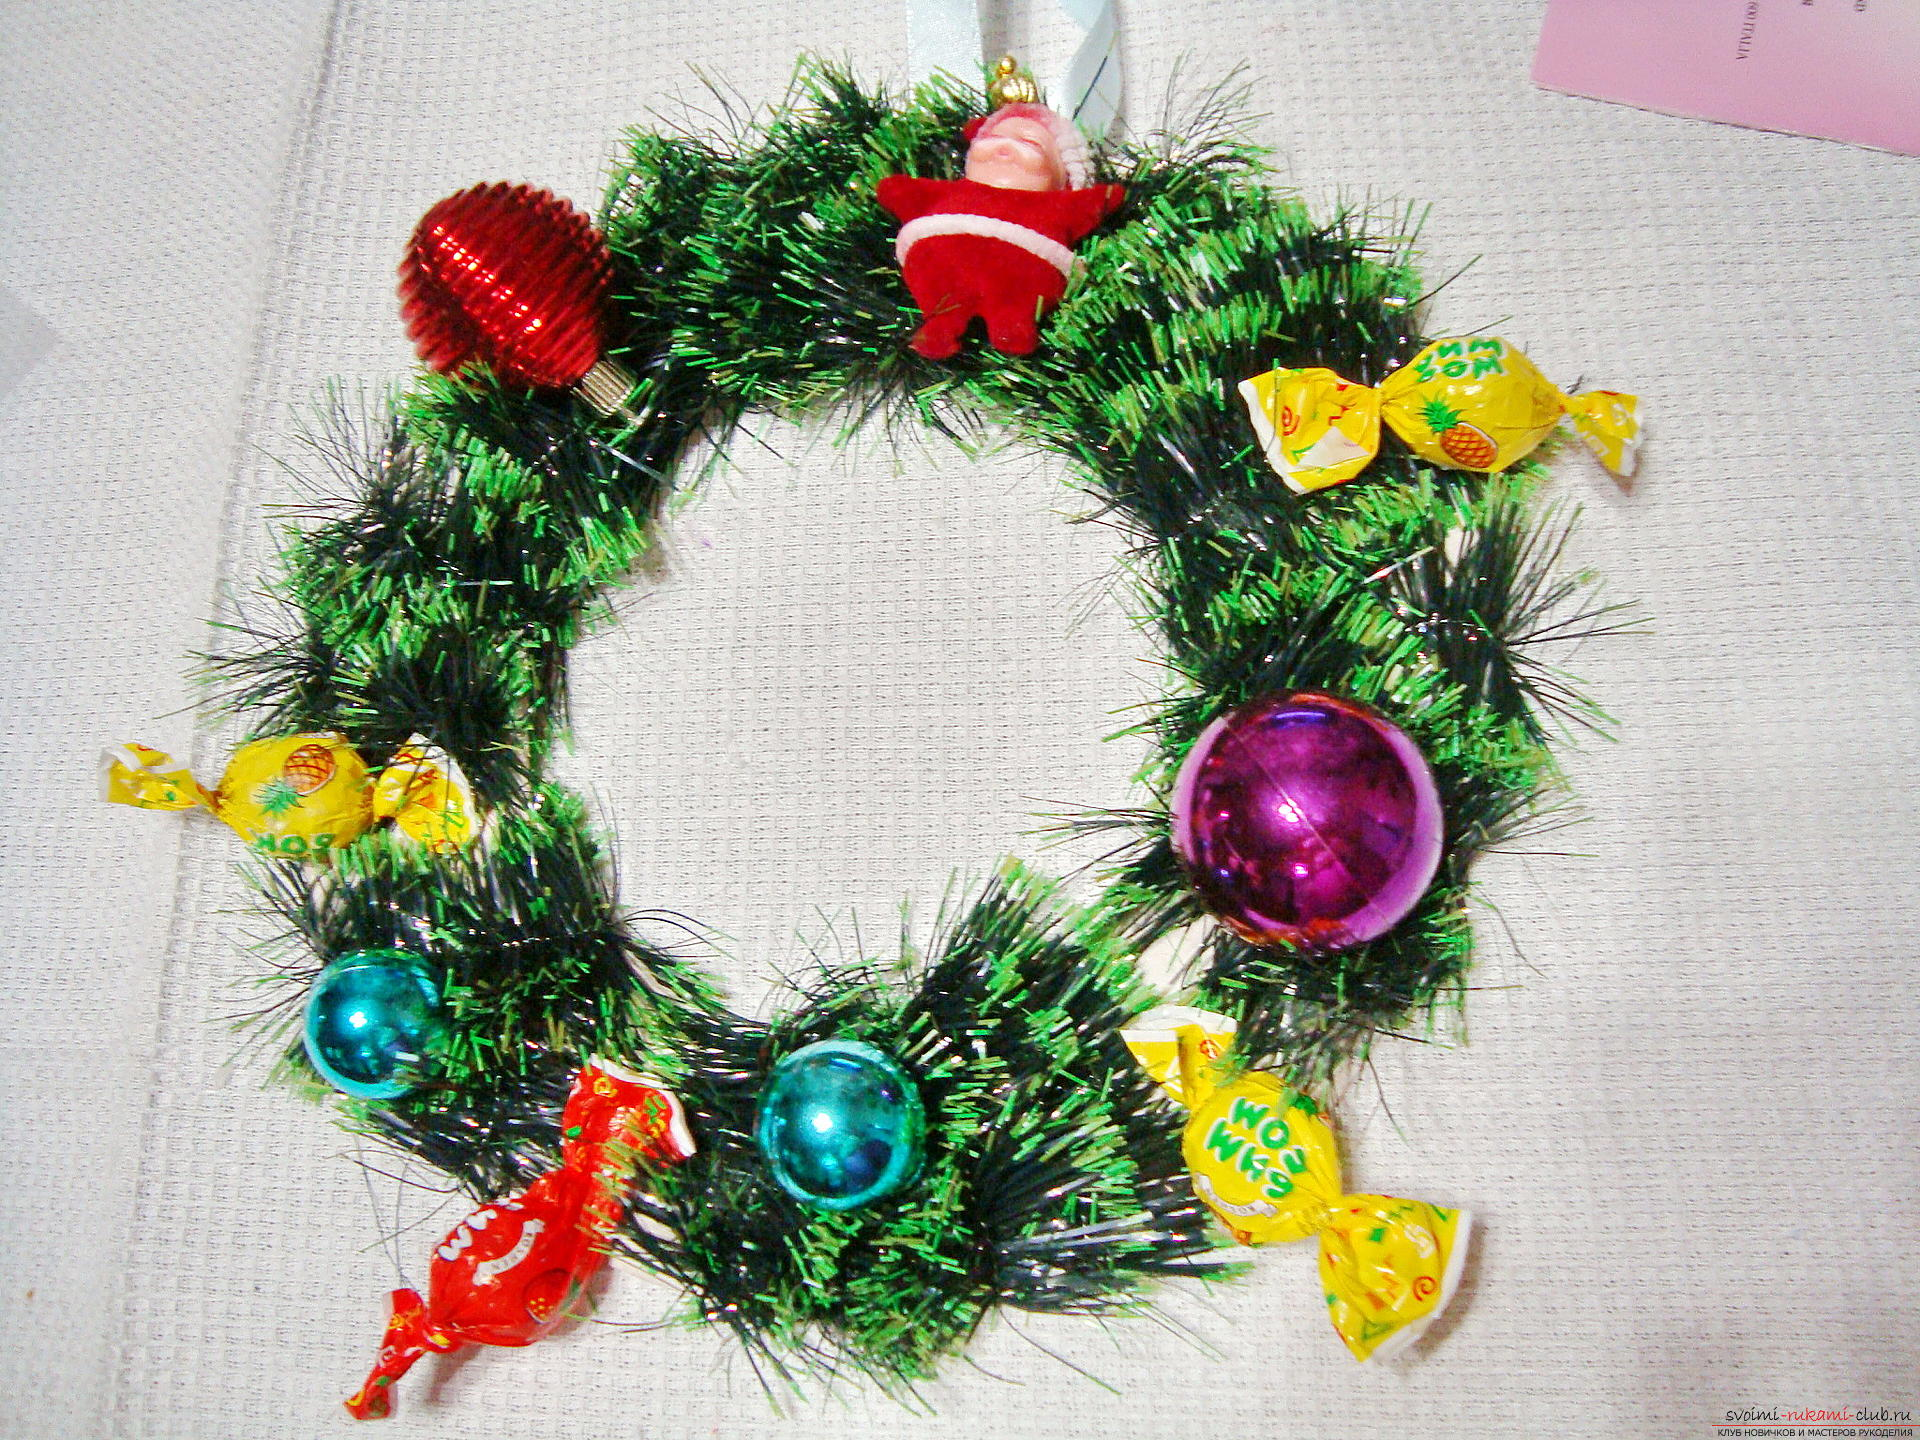 Christmas wreath, created by own hands, will bring happiness to the house for the whole New Year. Photo # 6